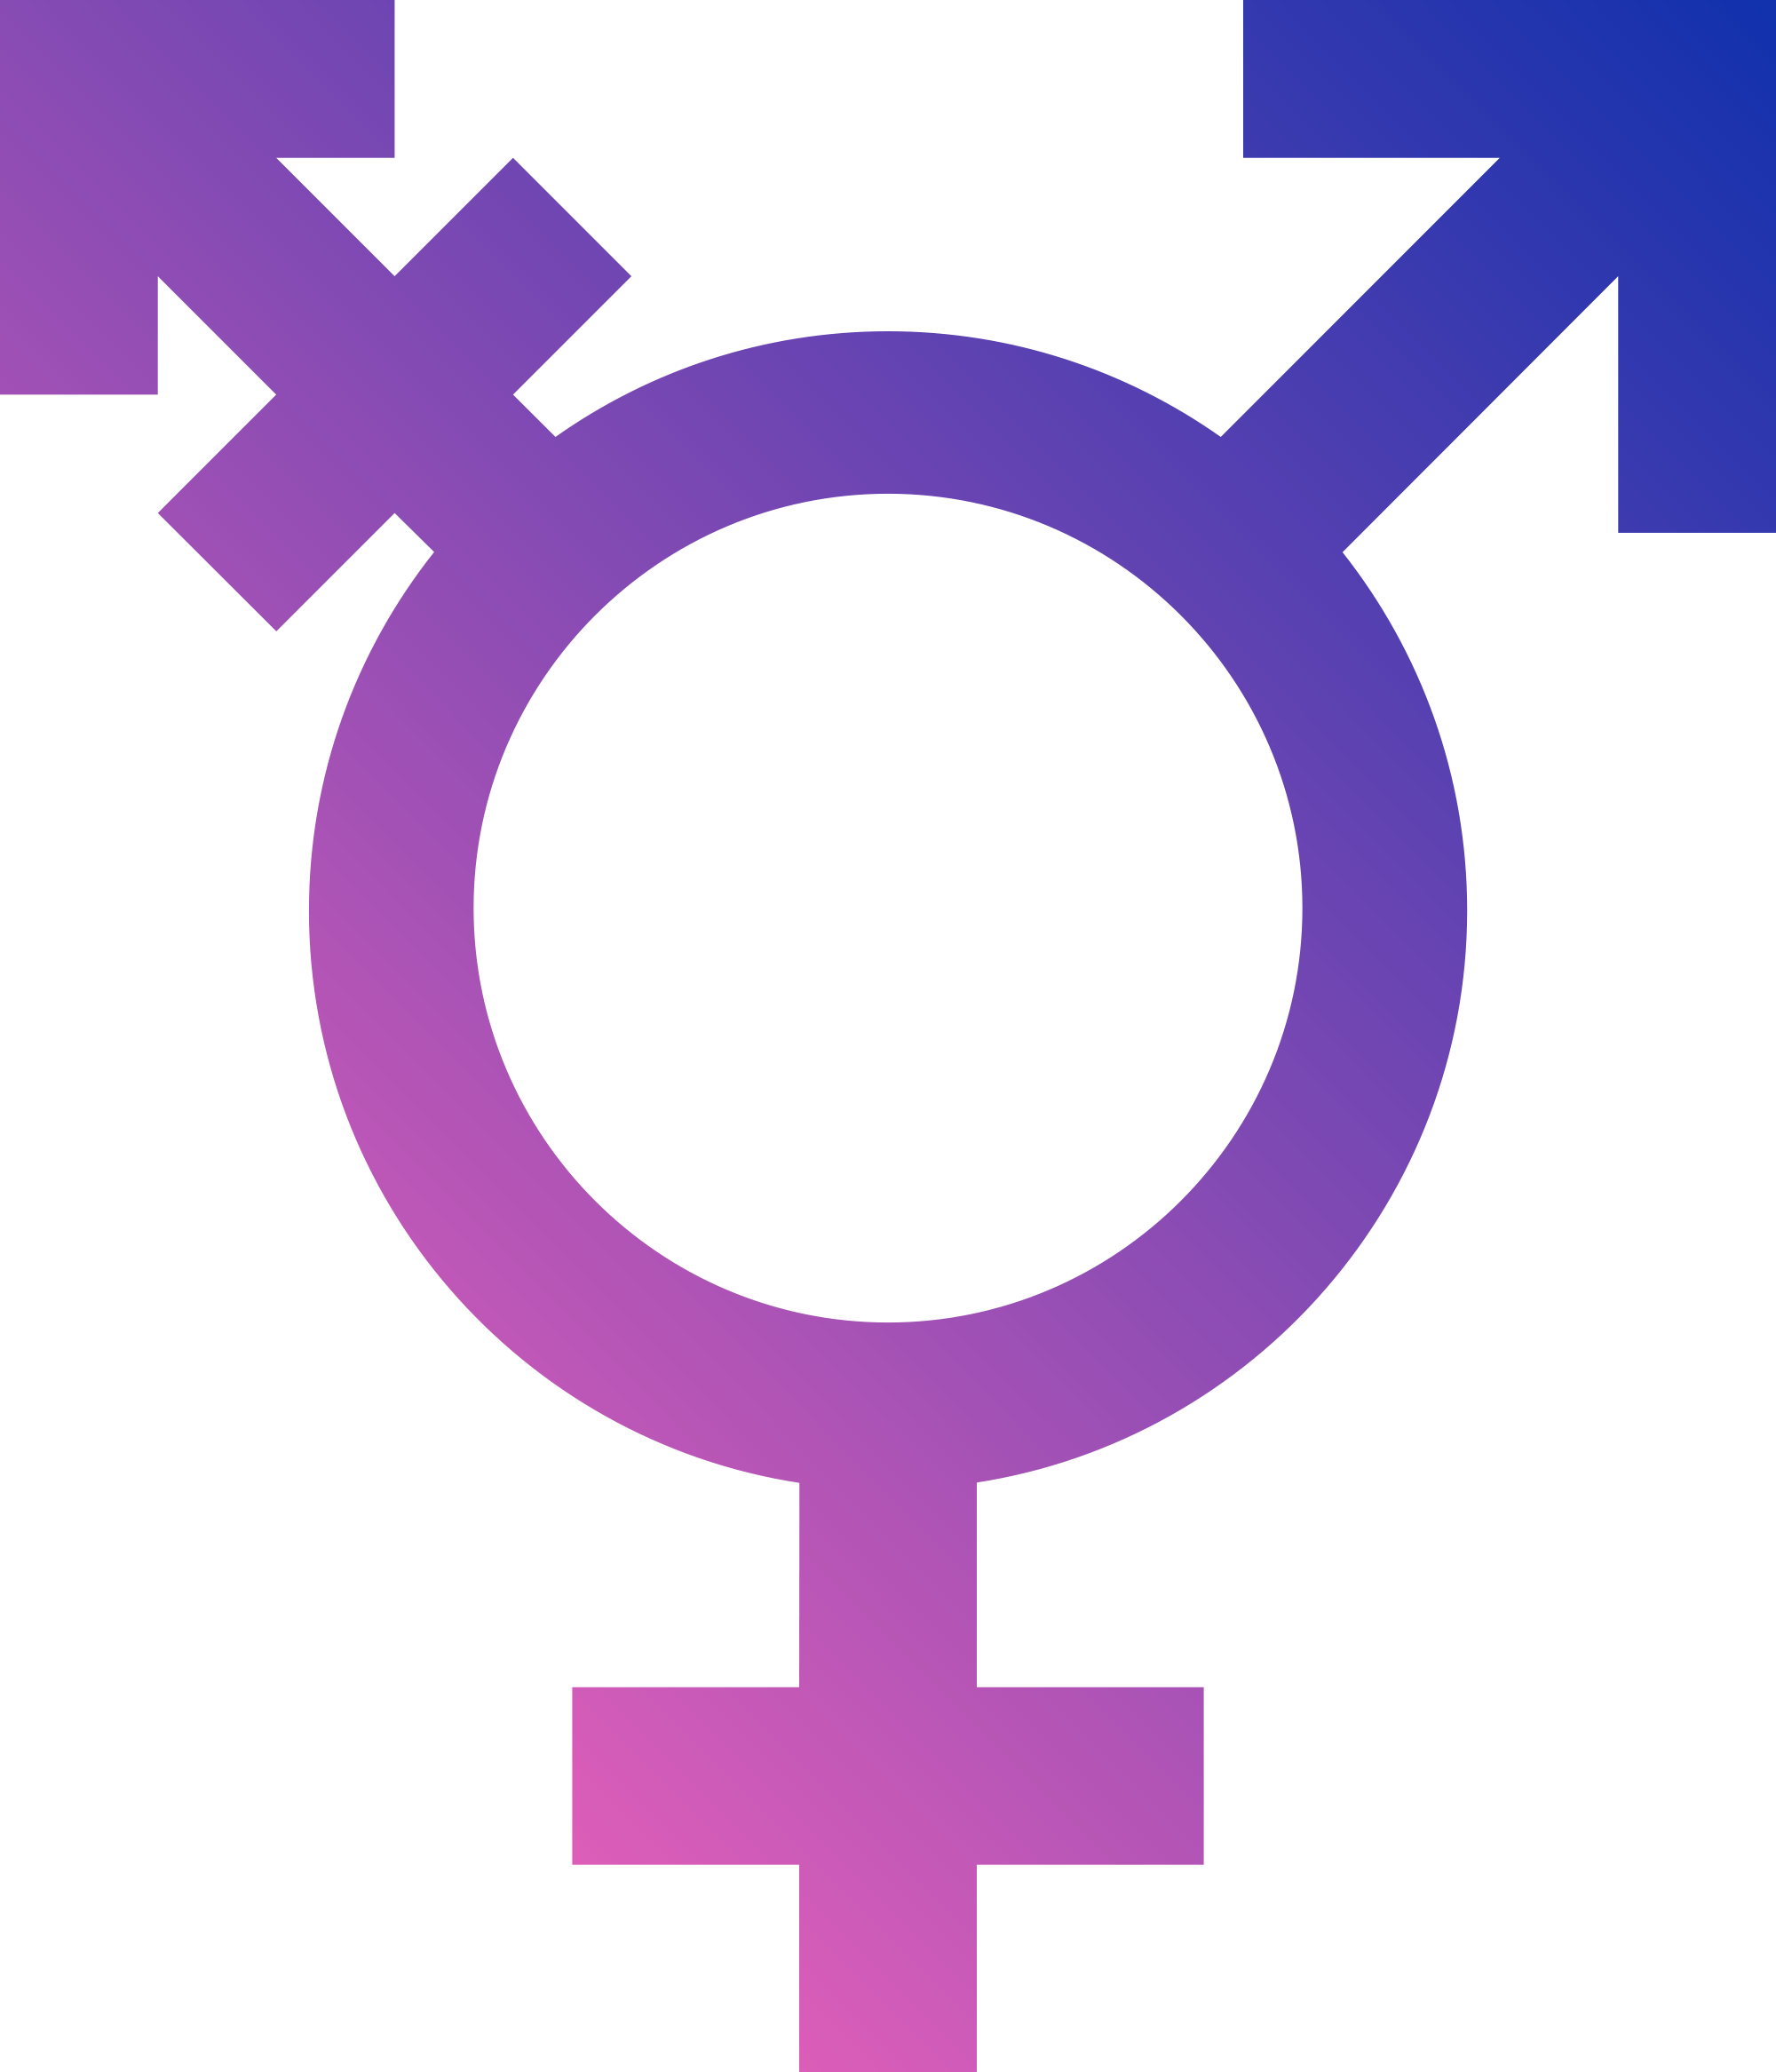 Female clipart female gender. Neutral silhouette at getdrawings